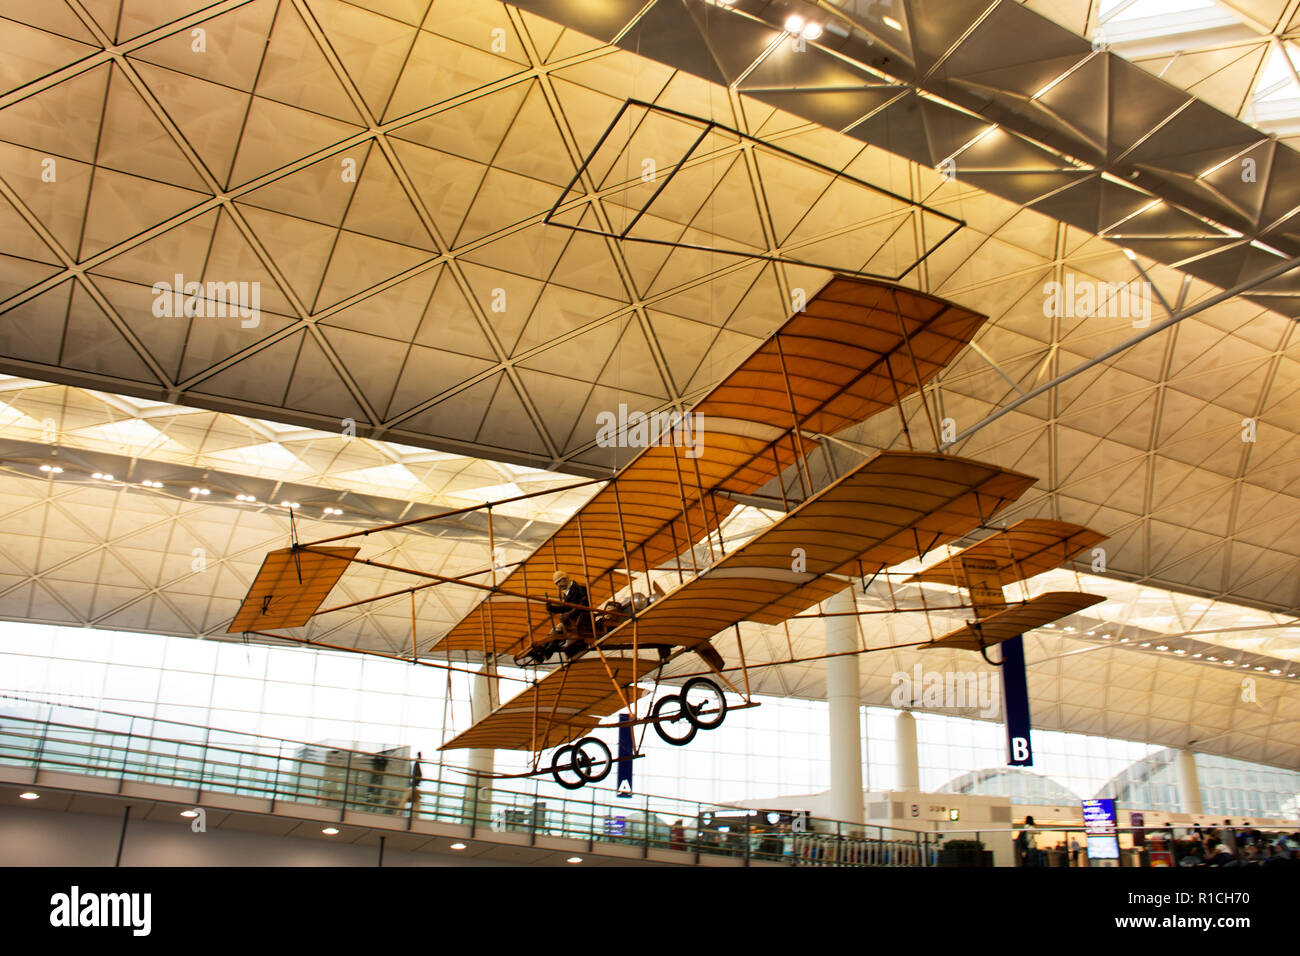 Model of ancient plane hanging on hall pf terminal for show people at Chek Lap Kok or Hong Kong International Airport on September 10, 2018 in Hong Ko - Stock Image